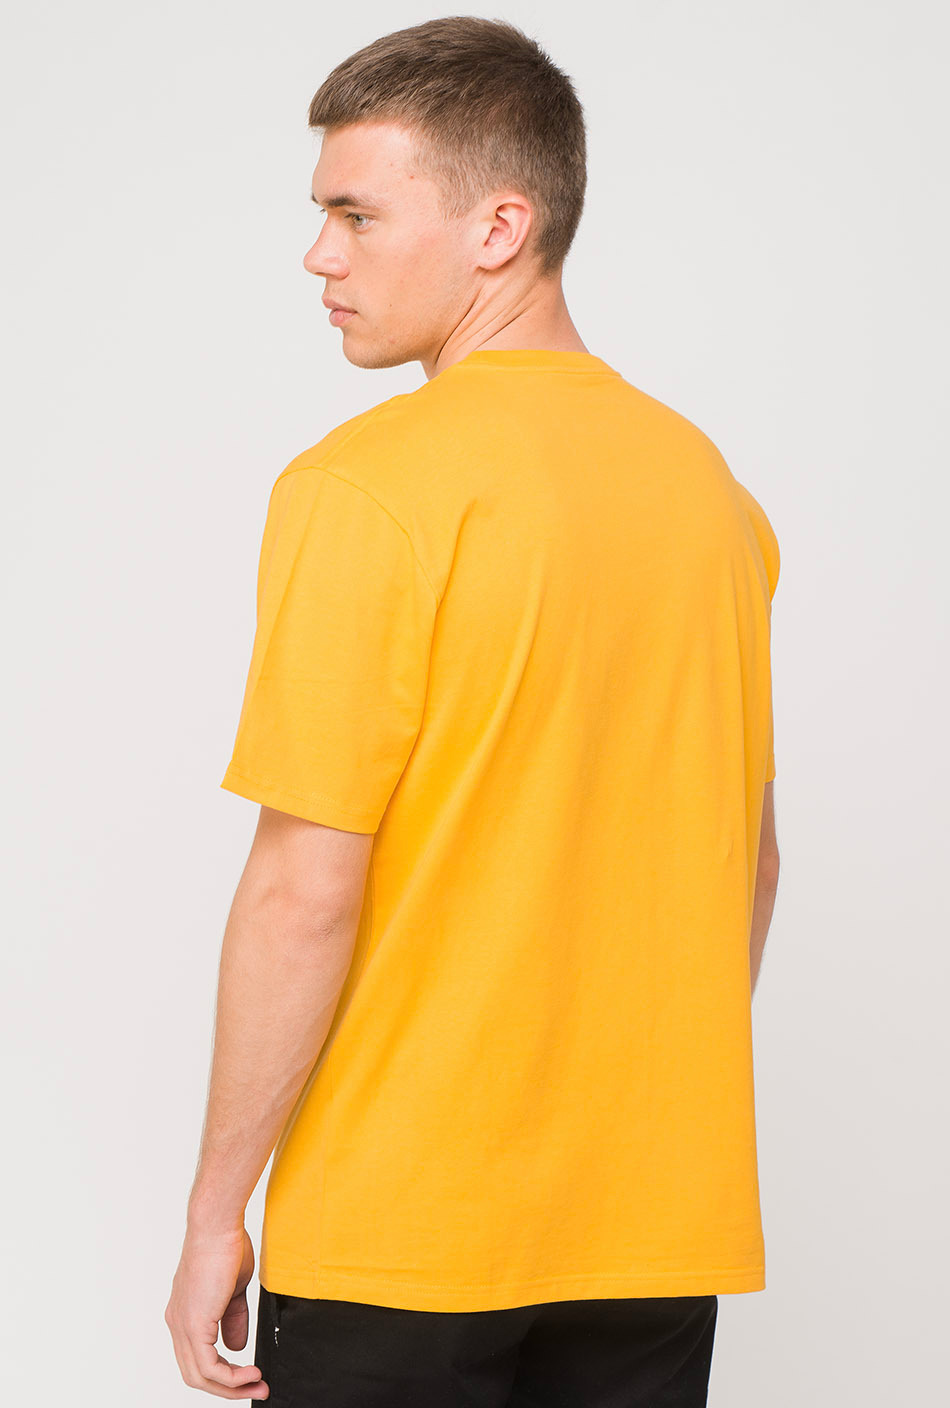 Carhartt Script Sunflower T-Shirt